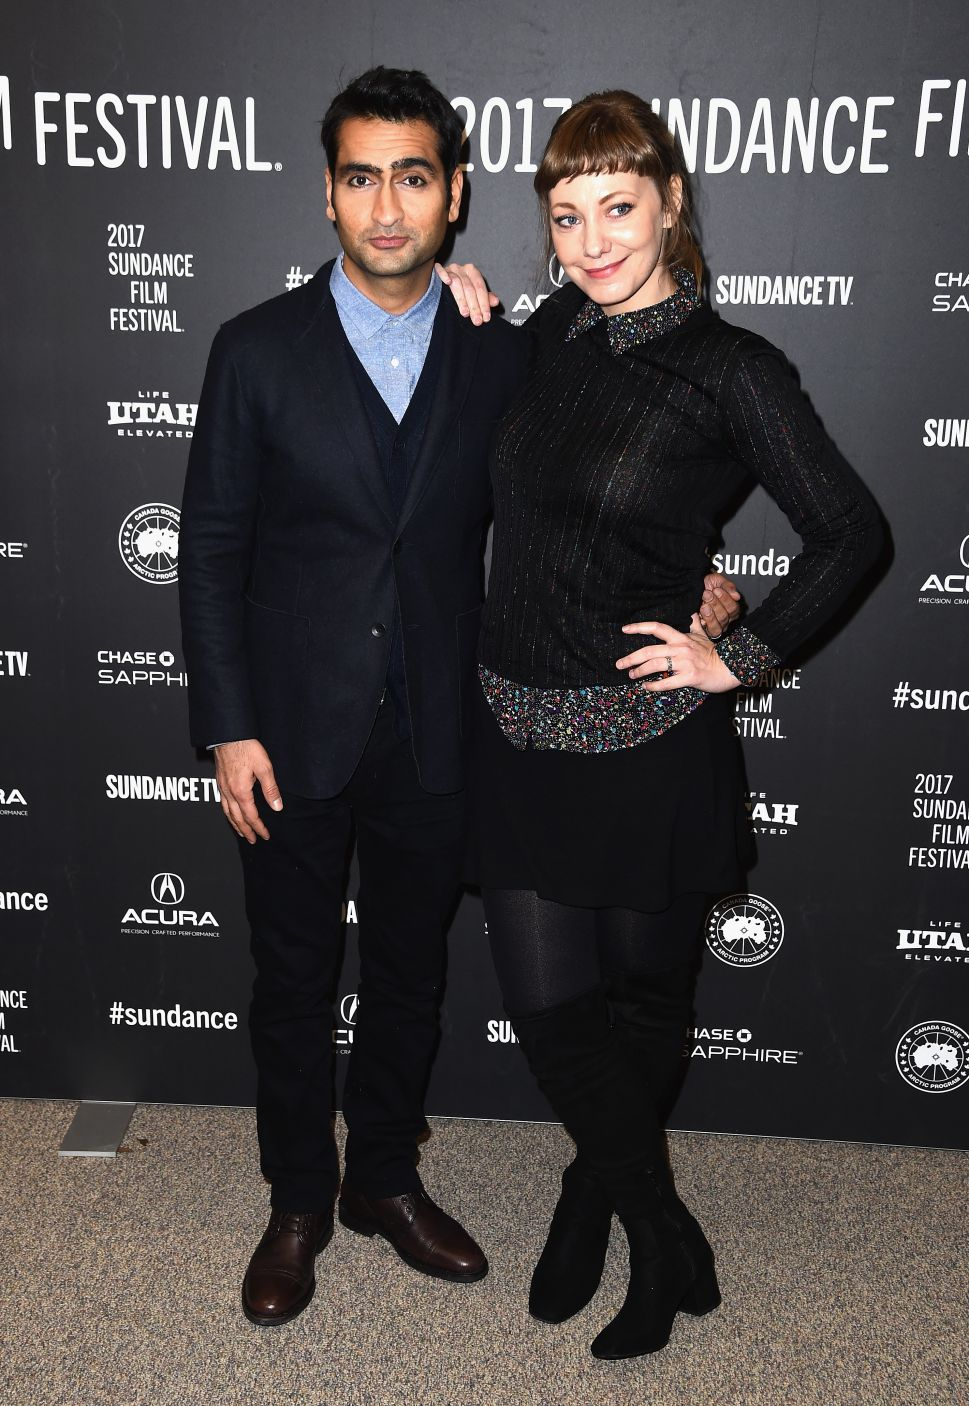 Sundance 2017 Dispatches: Uber Surges, Cyber Attacks, Protests and 'The Big Sick'